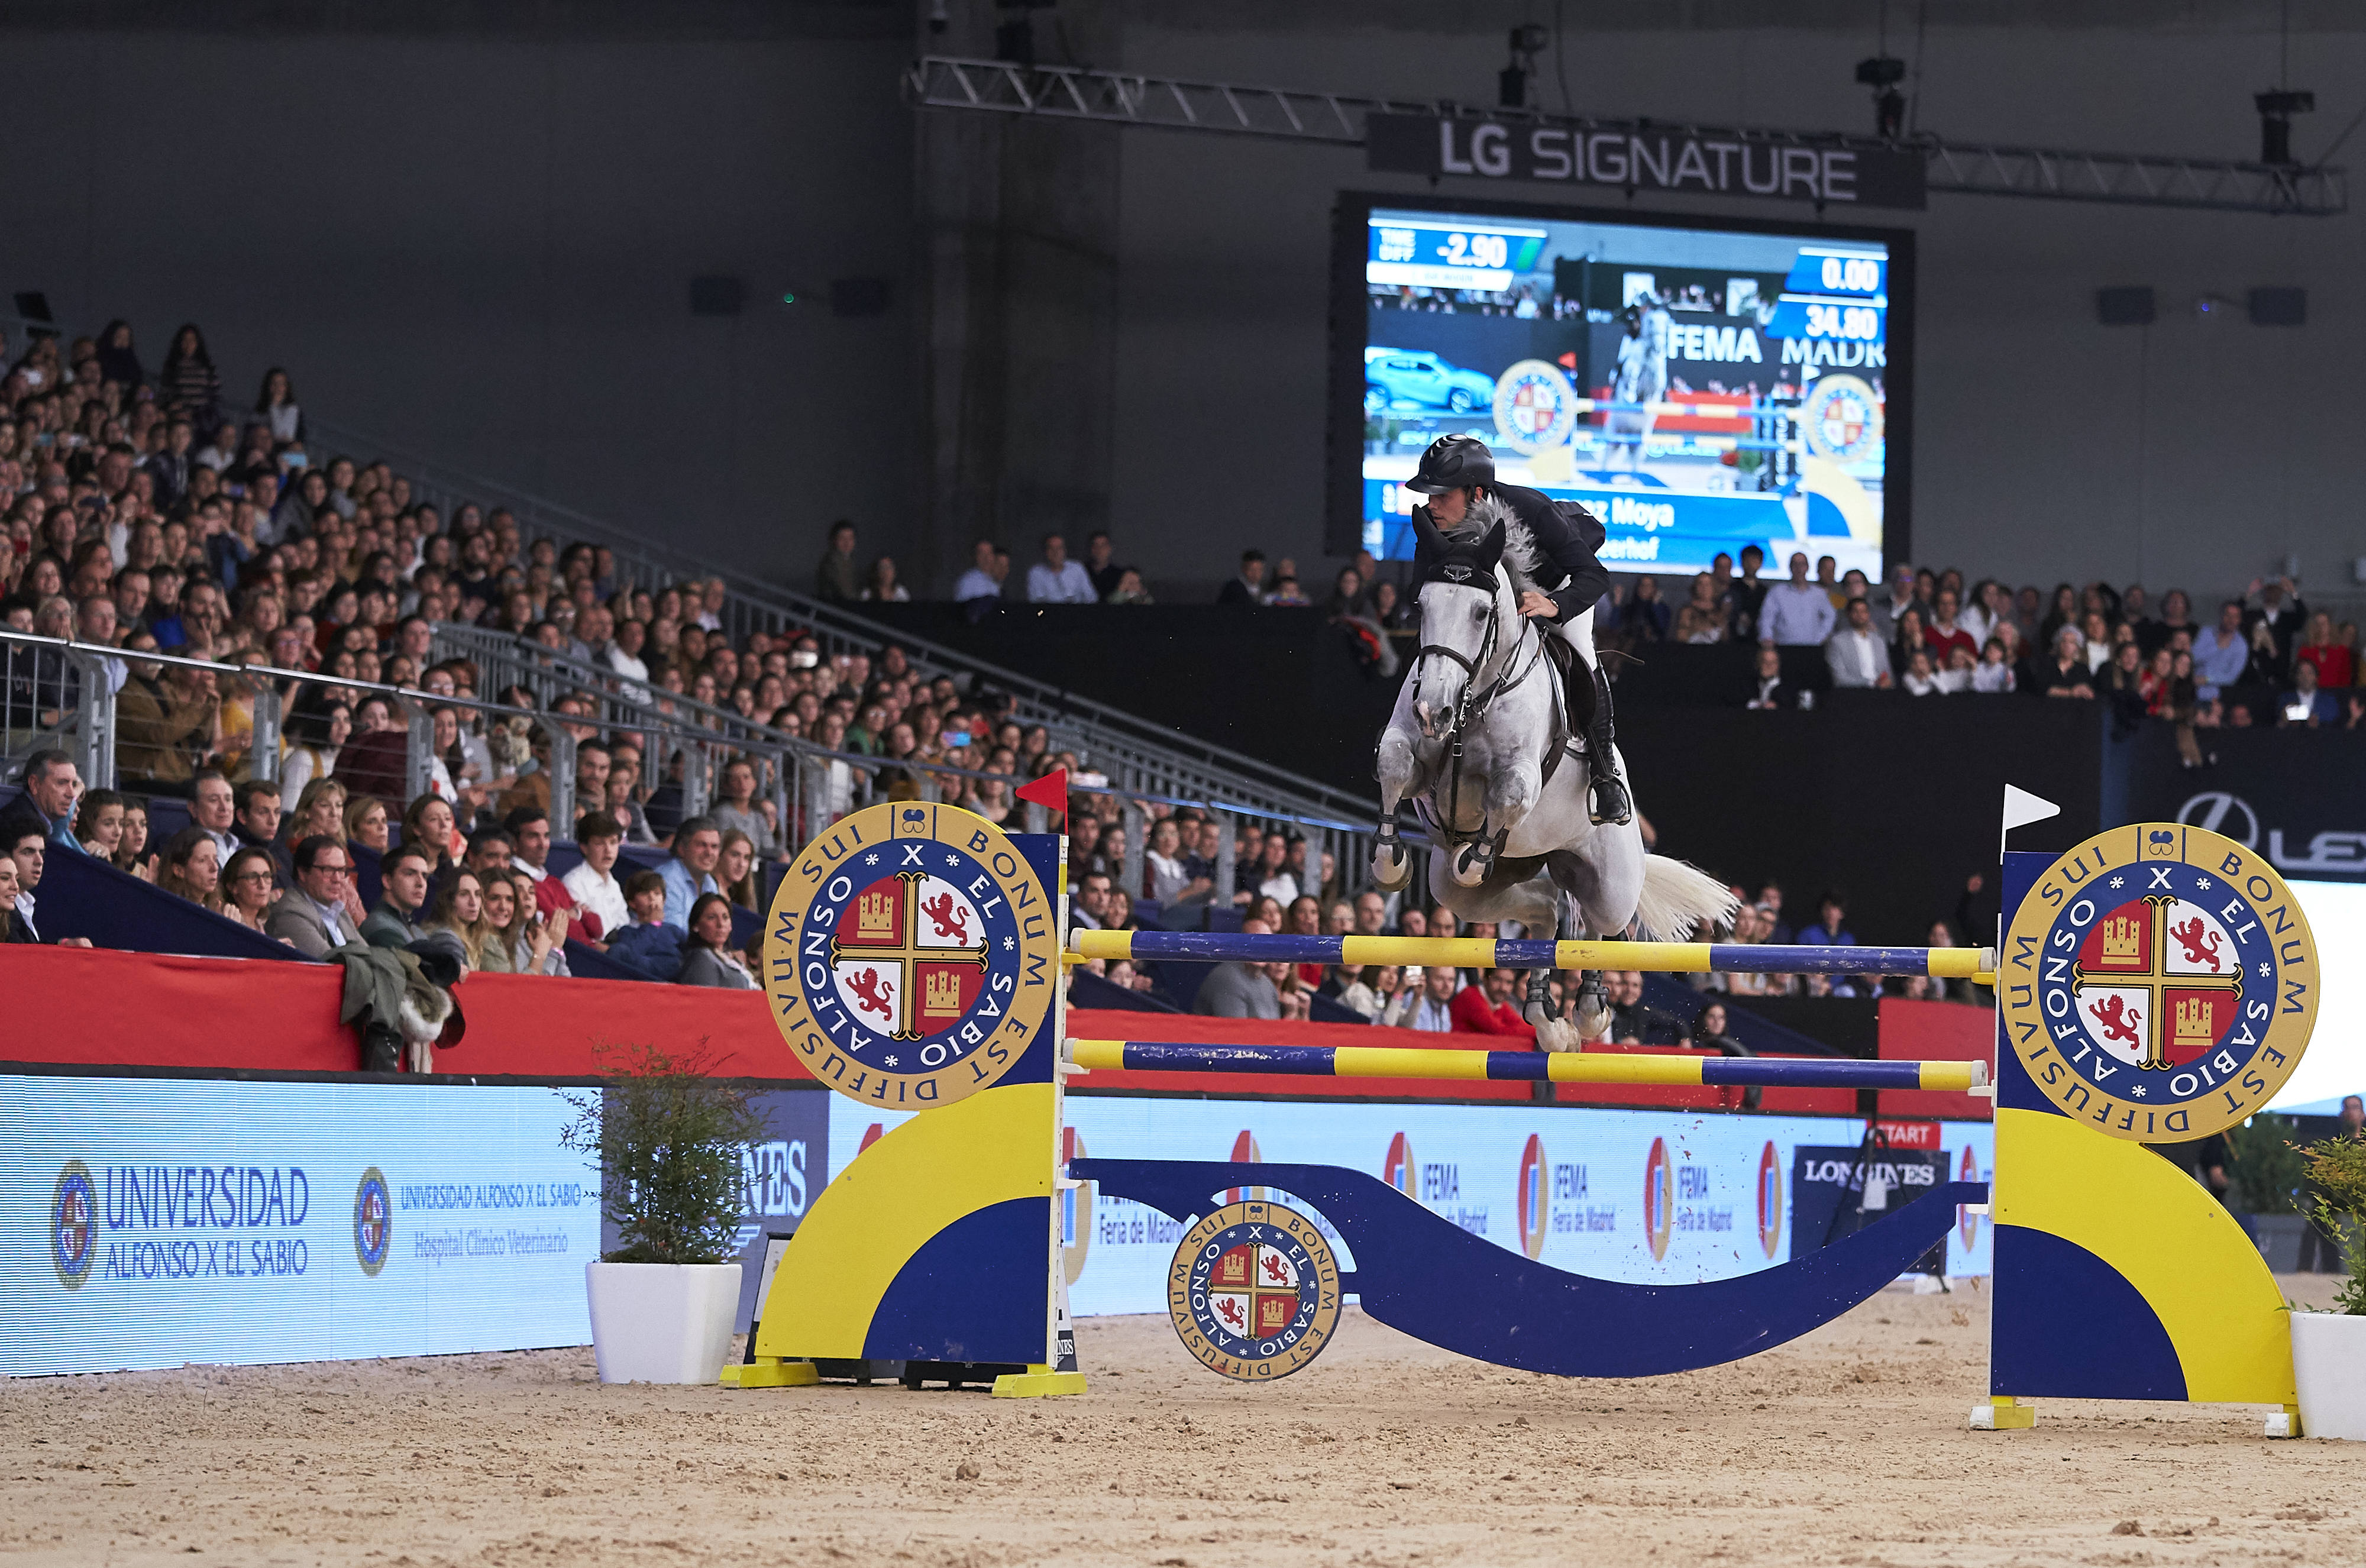 Spanish Tsunami on the second day of the IFEMA Madrid Horse Week